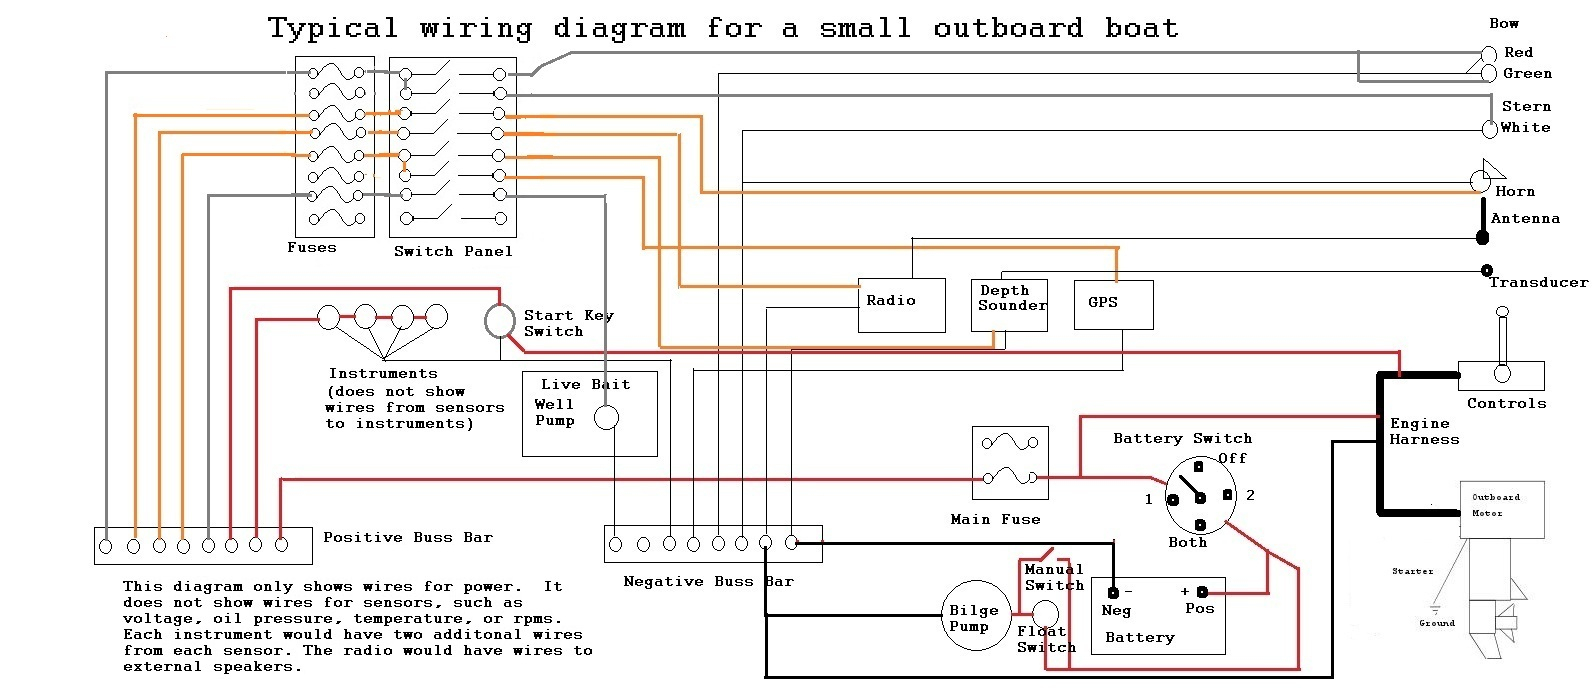 Boat Switch Panel Wiring Diagram | Wiring Diagram - 12V Switch Panel Wiring Diagram